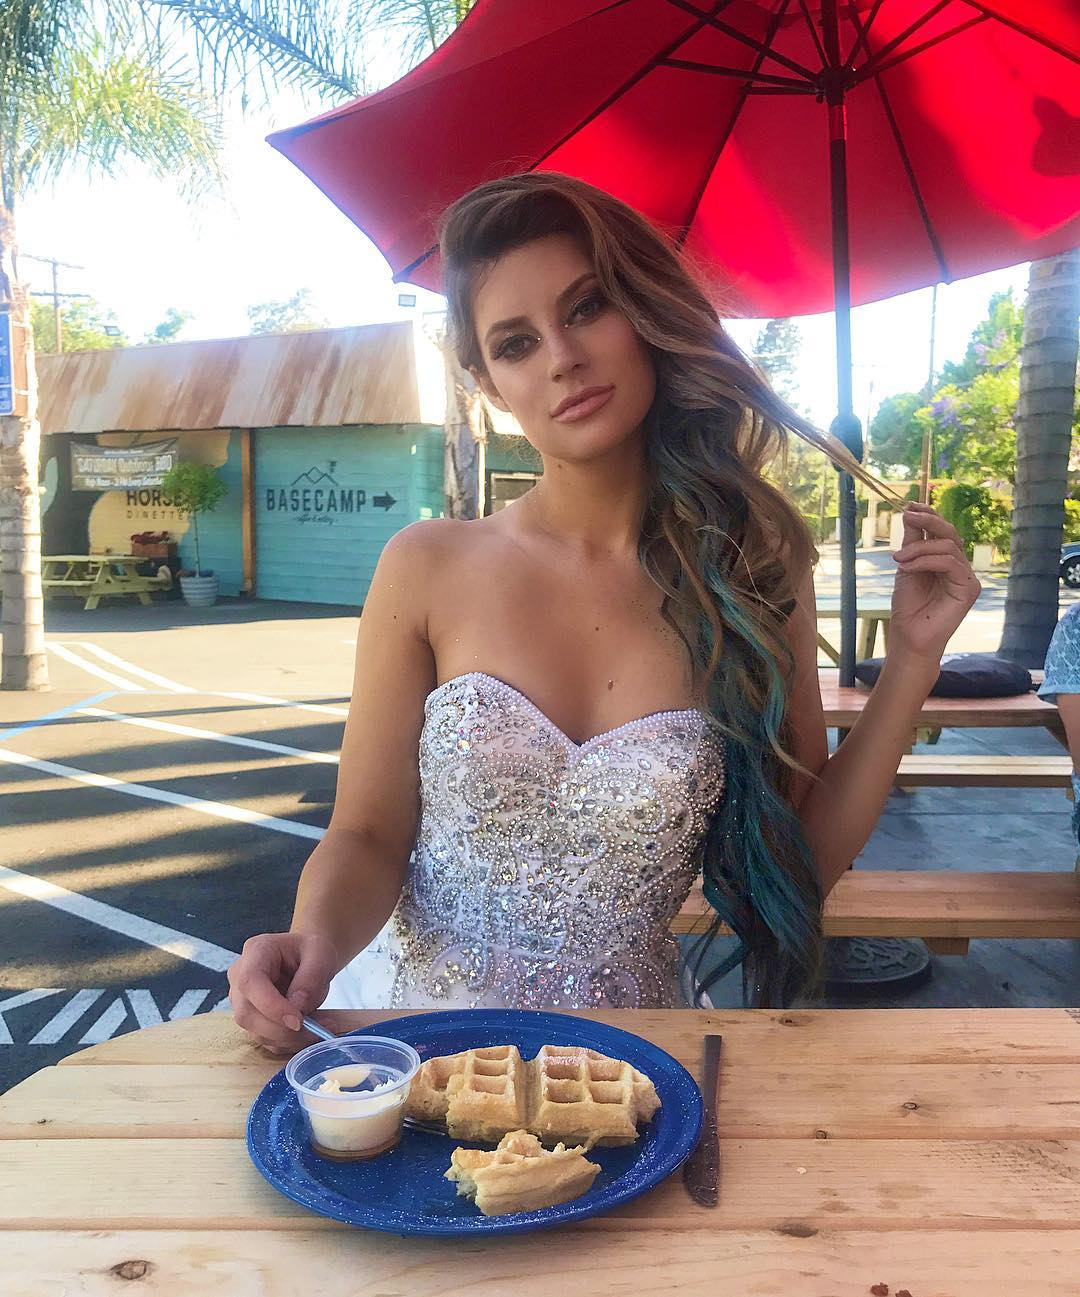 Hacked Hannah Stocking nude photos 2019